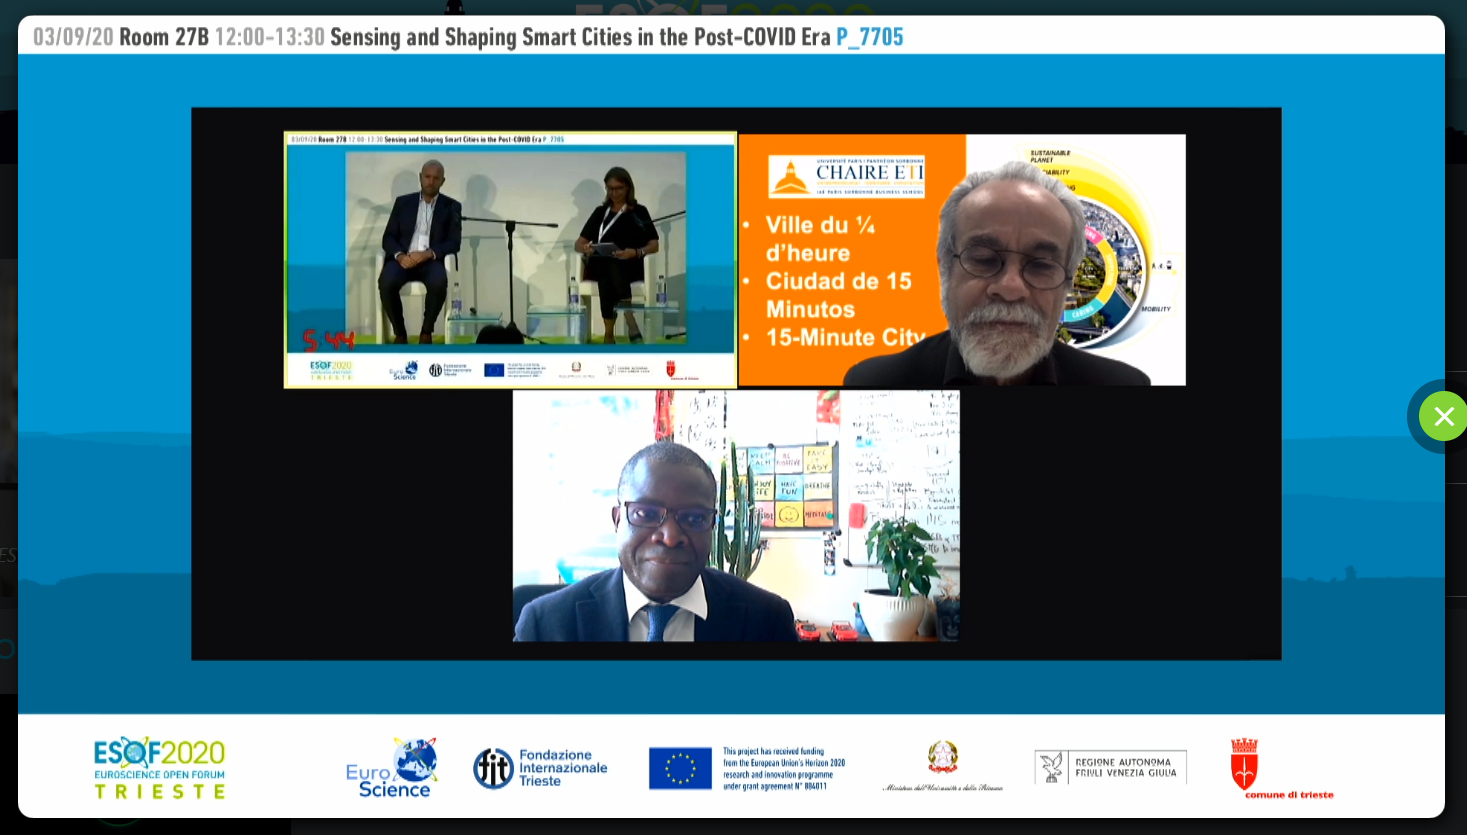 UNIDO ITPO Italy organized a conference on Smart Cities at ESOF2020